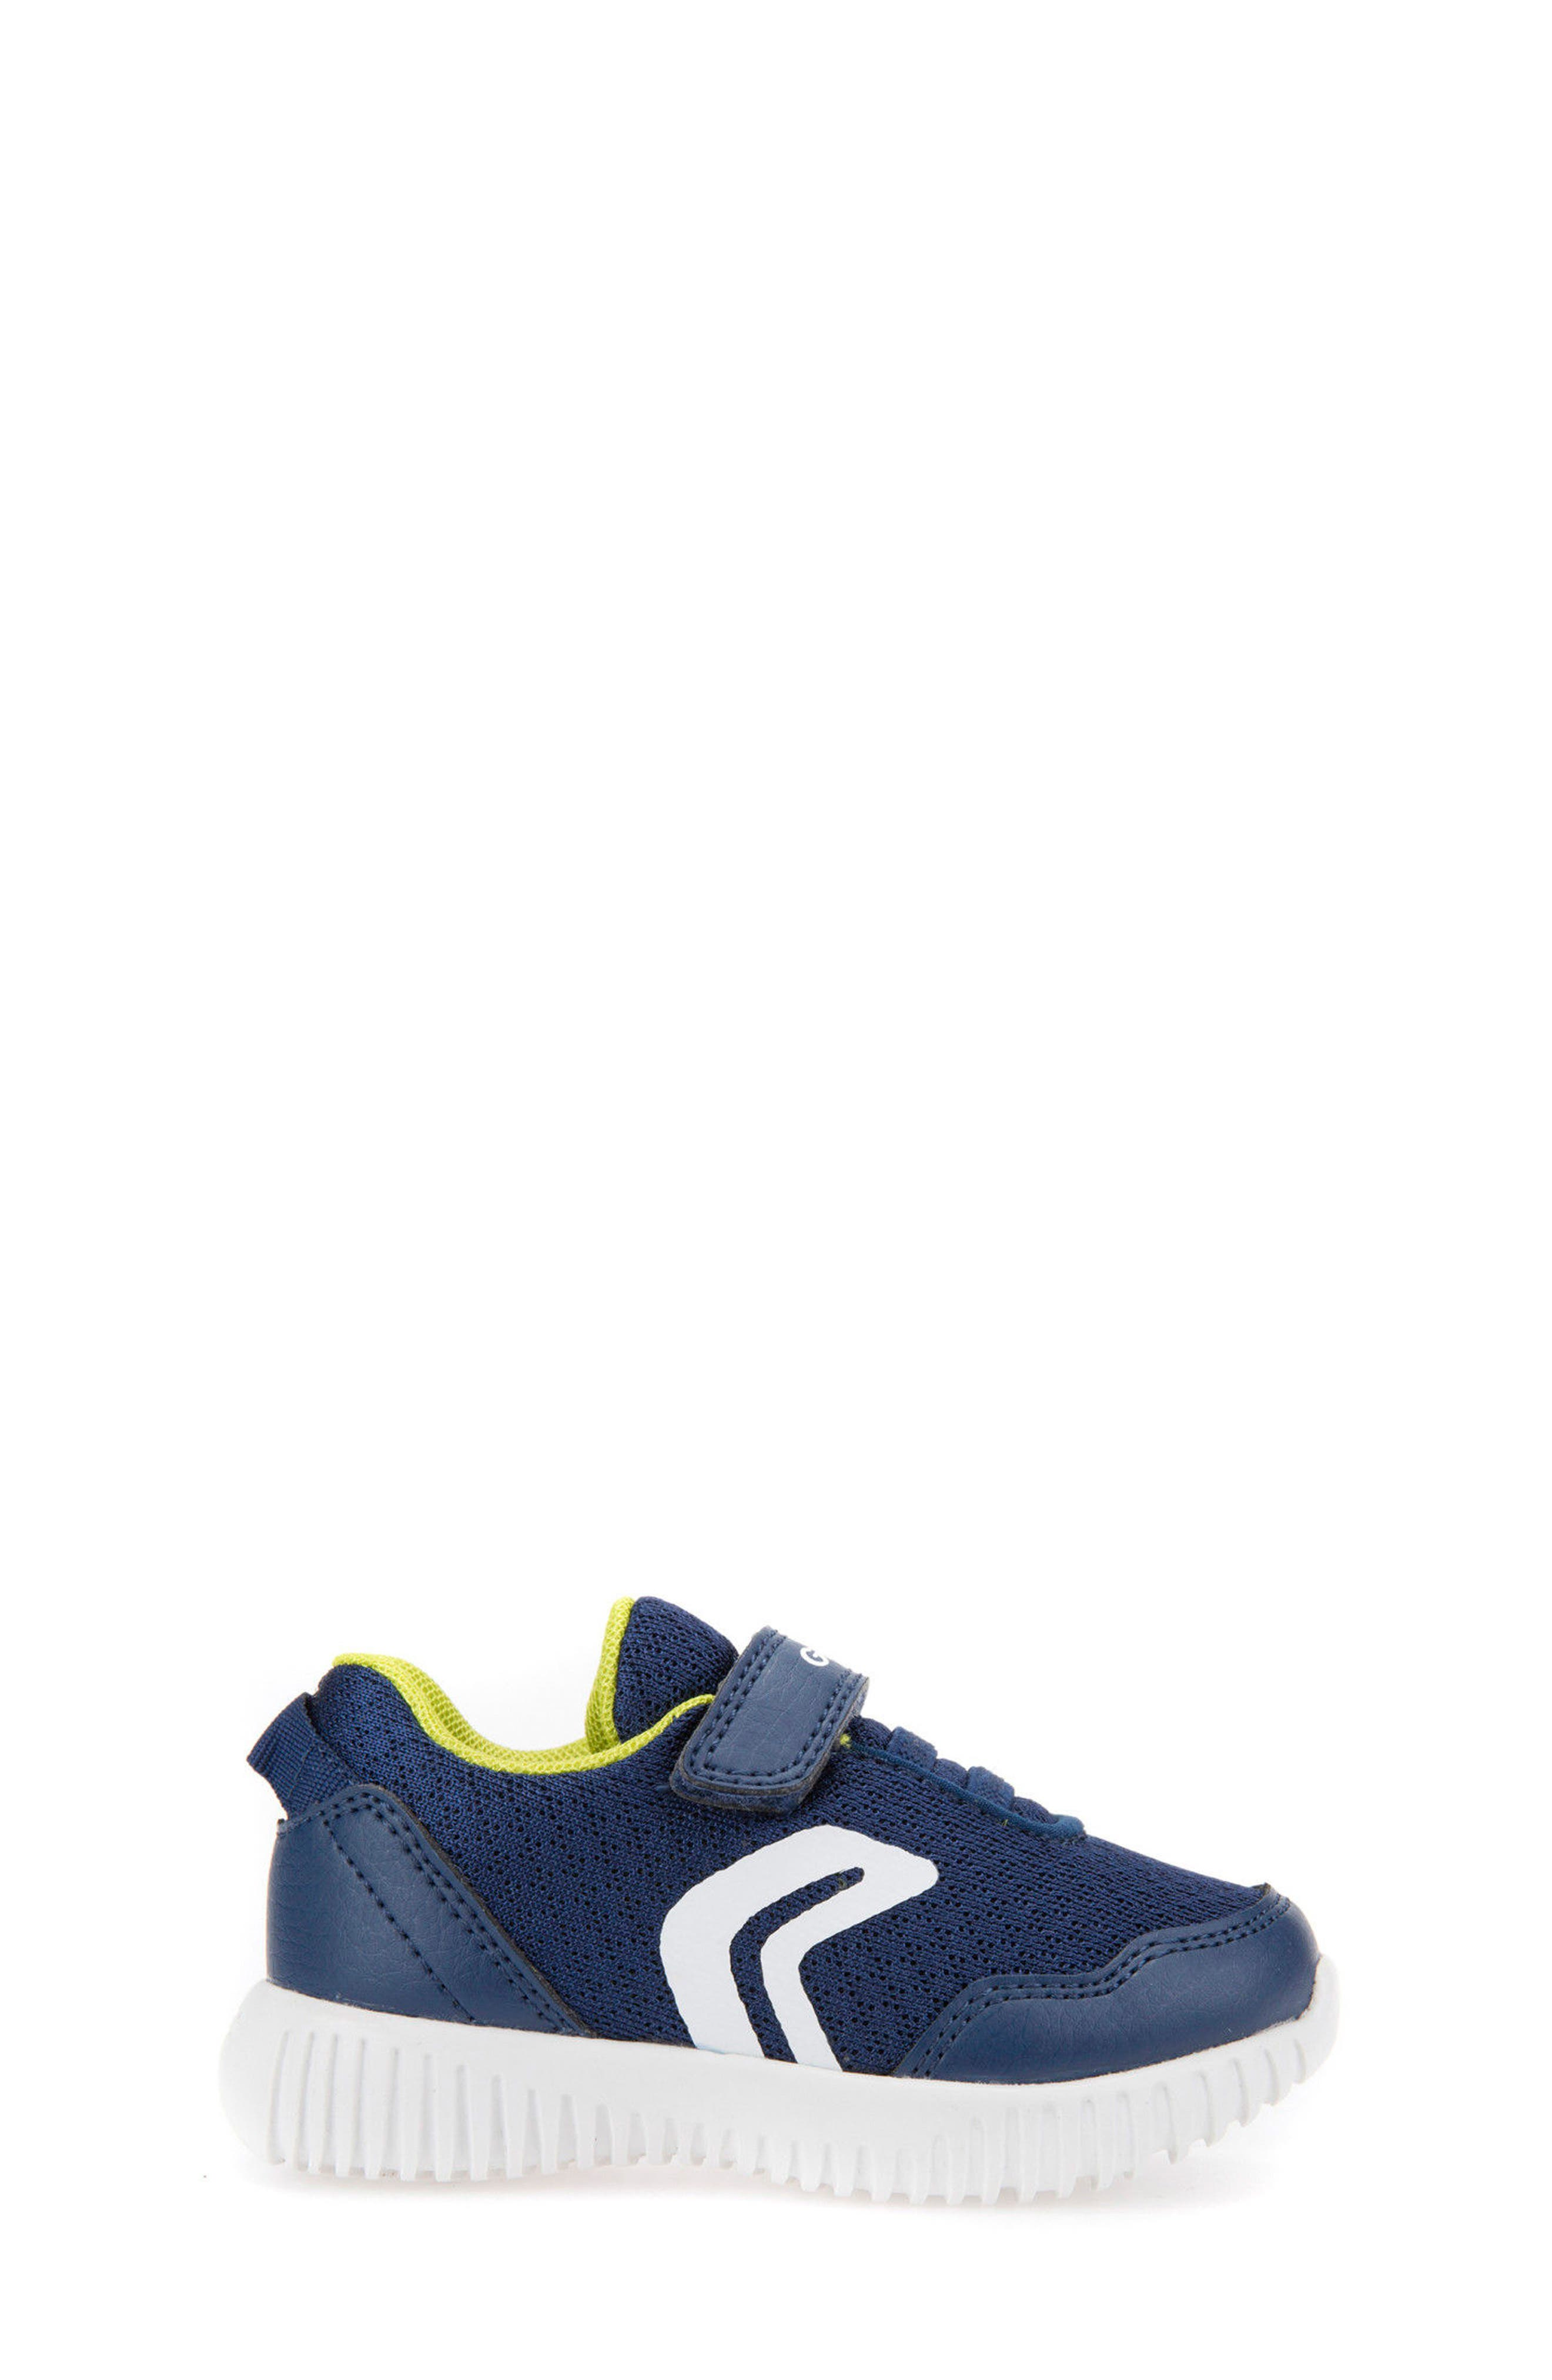 Waviness Sneaker,                             Alternate thumbnail 3, color,                             NAVY/ LIME